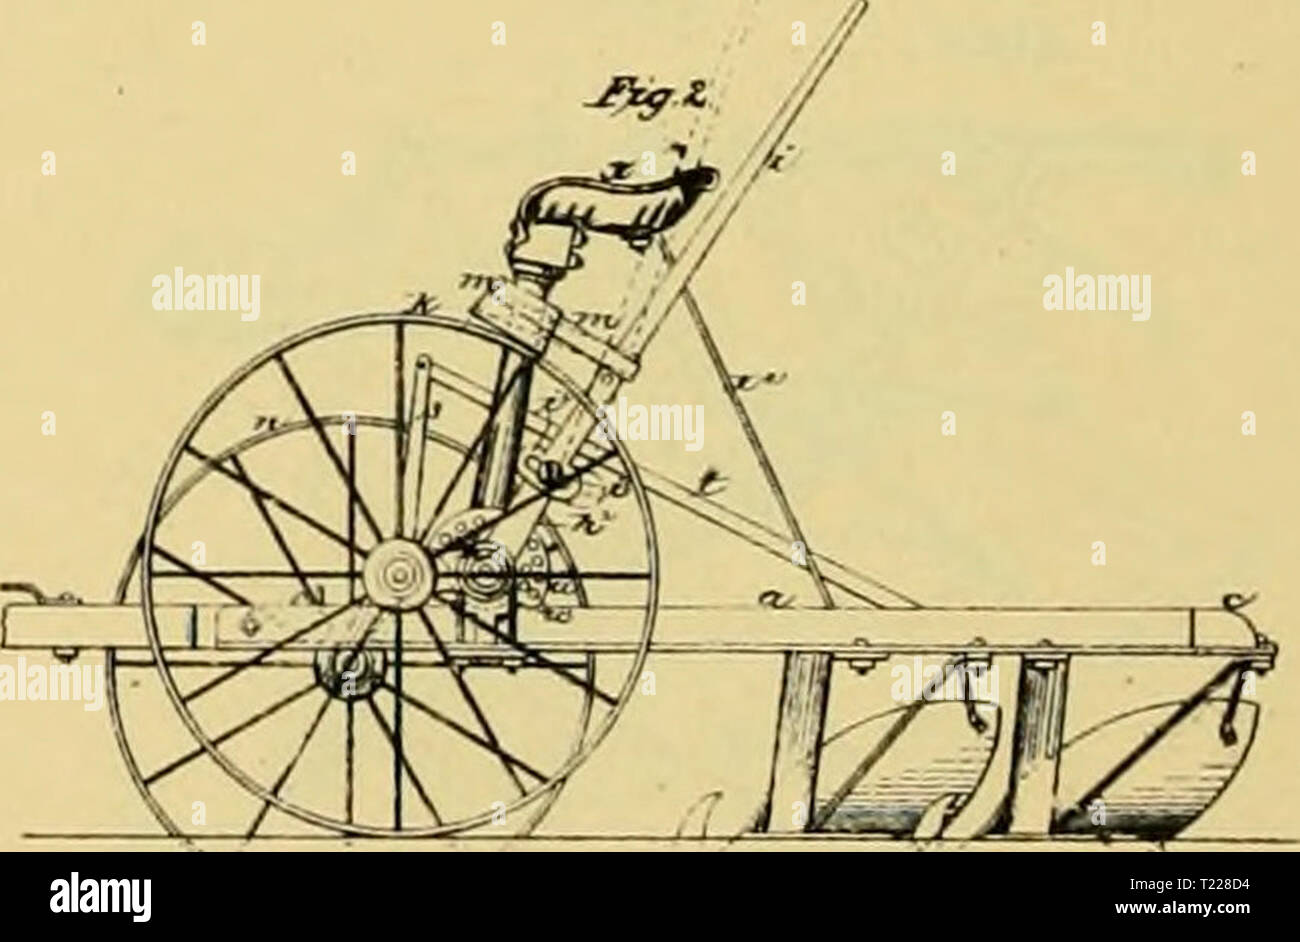 Archive image from page 897 of Digest of agricultural implements, patented Digest of agricultural implements, patented in the United States from A.D. 1789 to July 1881 ..  digestofagricult02alle Year: 1886  /r. l.ouijtr,<Ae.Uo  Stock Photo